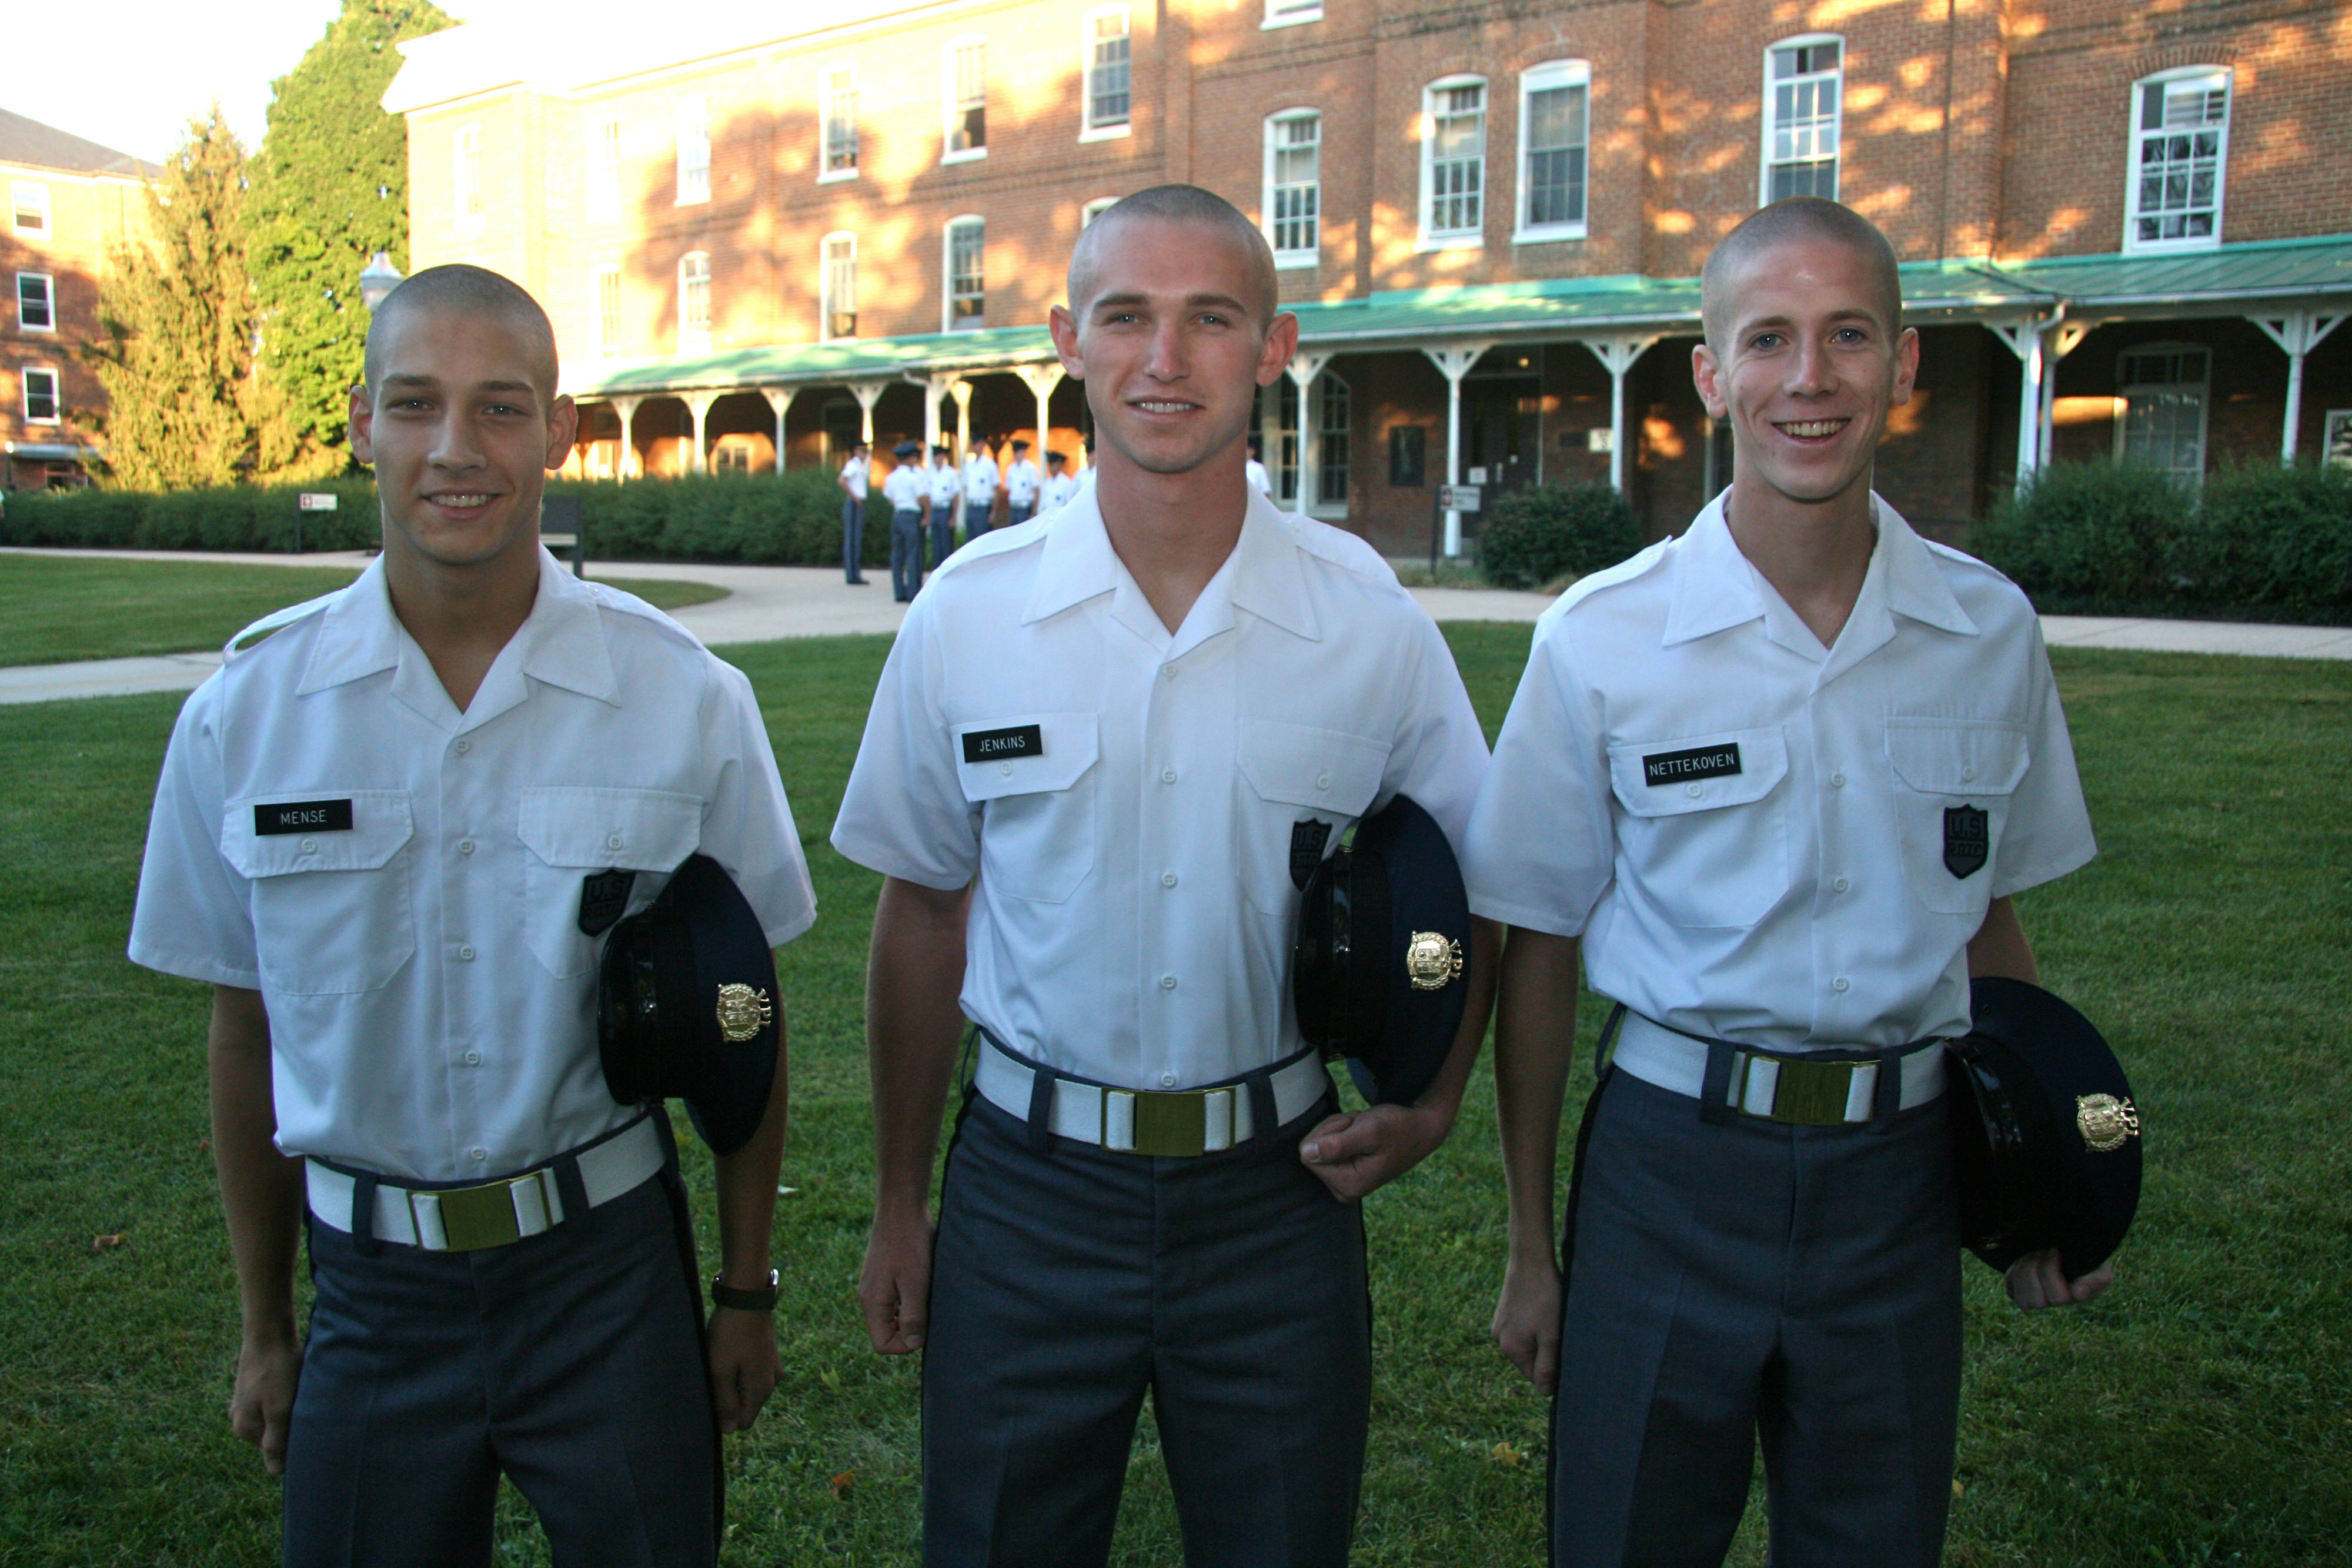 From left to right are Cadets Hunter Mense, Andrew Jenkins, and Peter Nettekoven